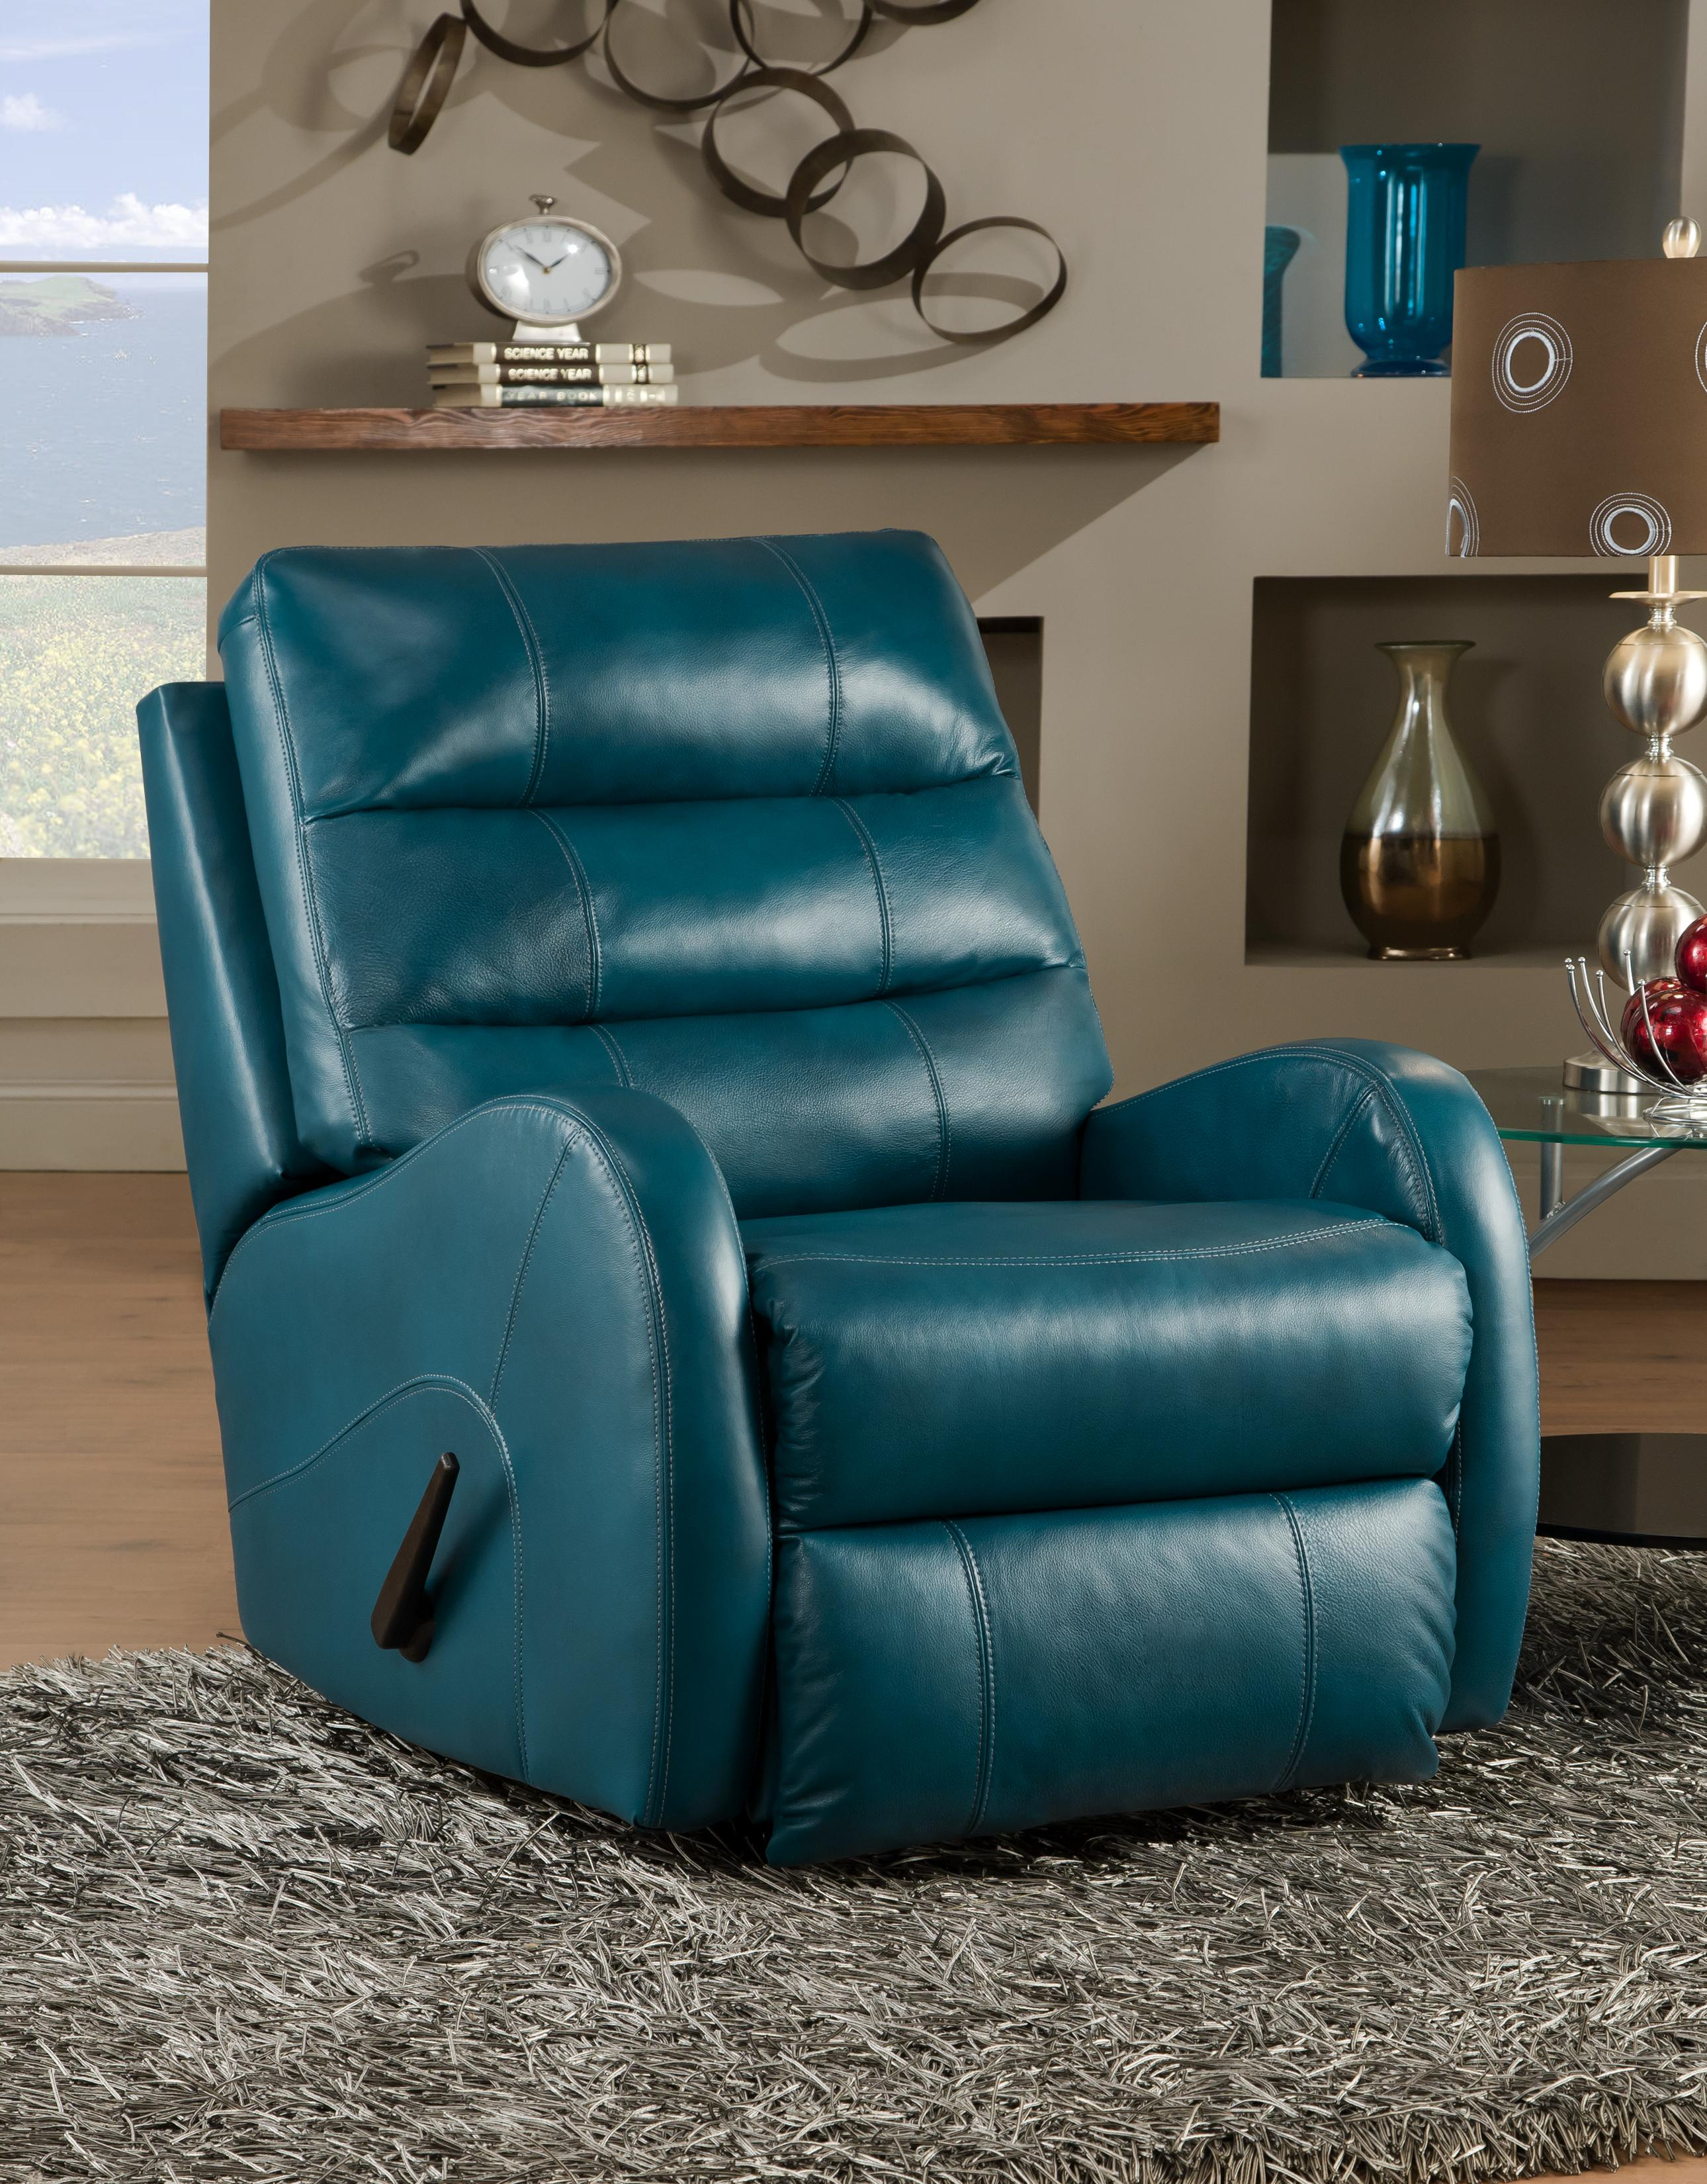 Rocker recliner with modern style by southern motion wolf and gardiner wolf furniture - Stylish rocker recliner ...